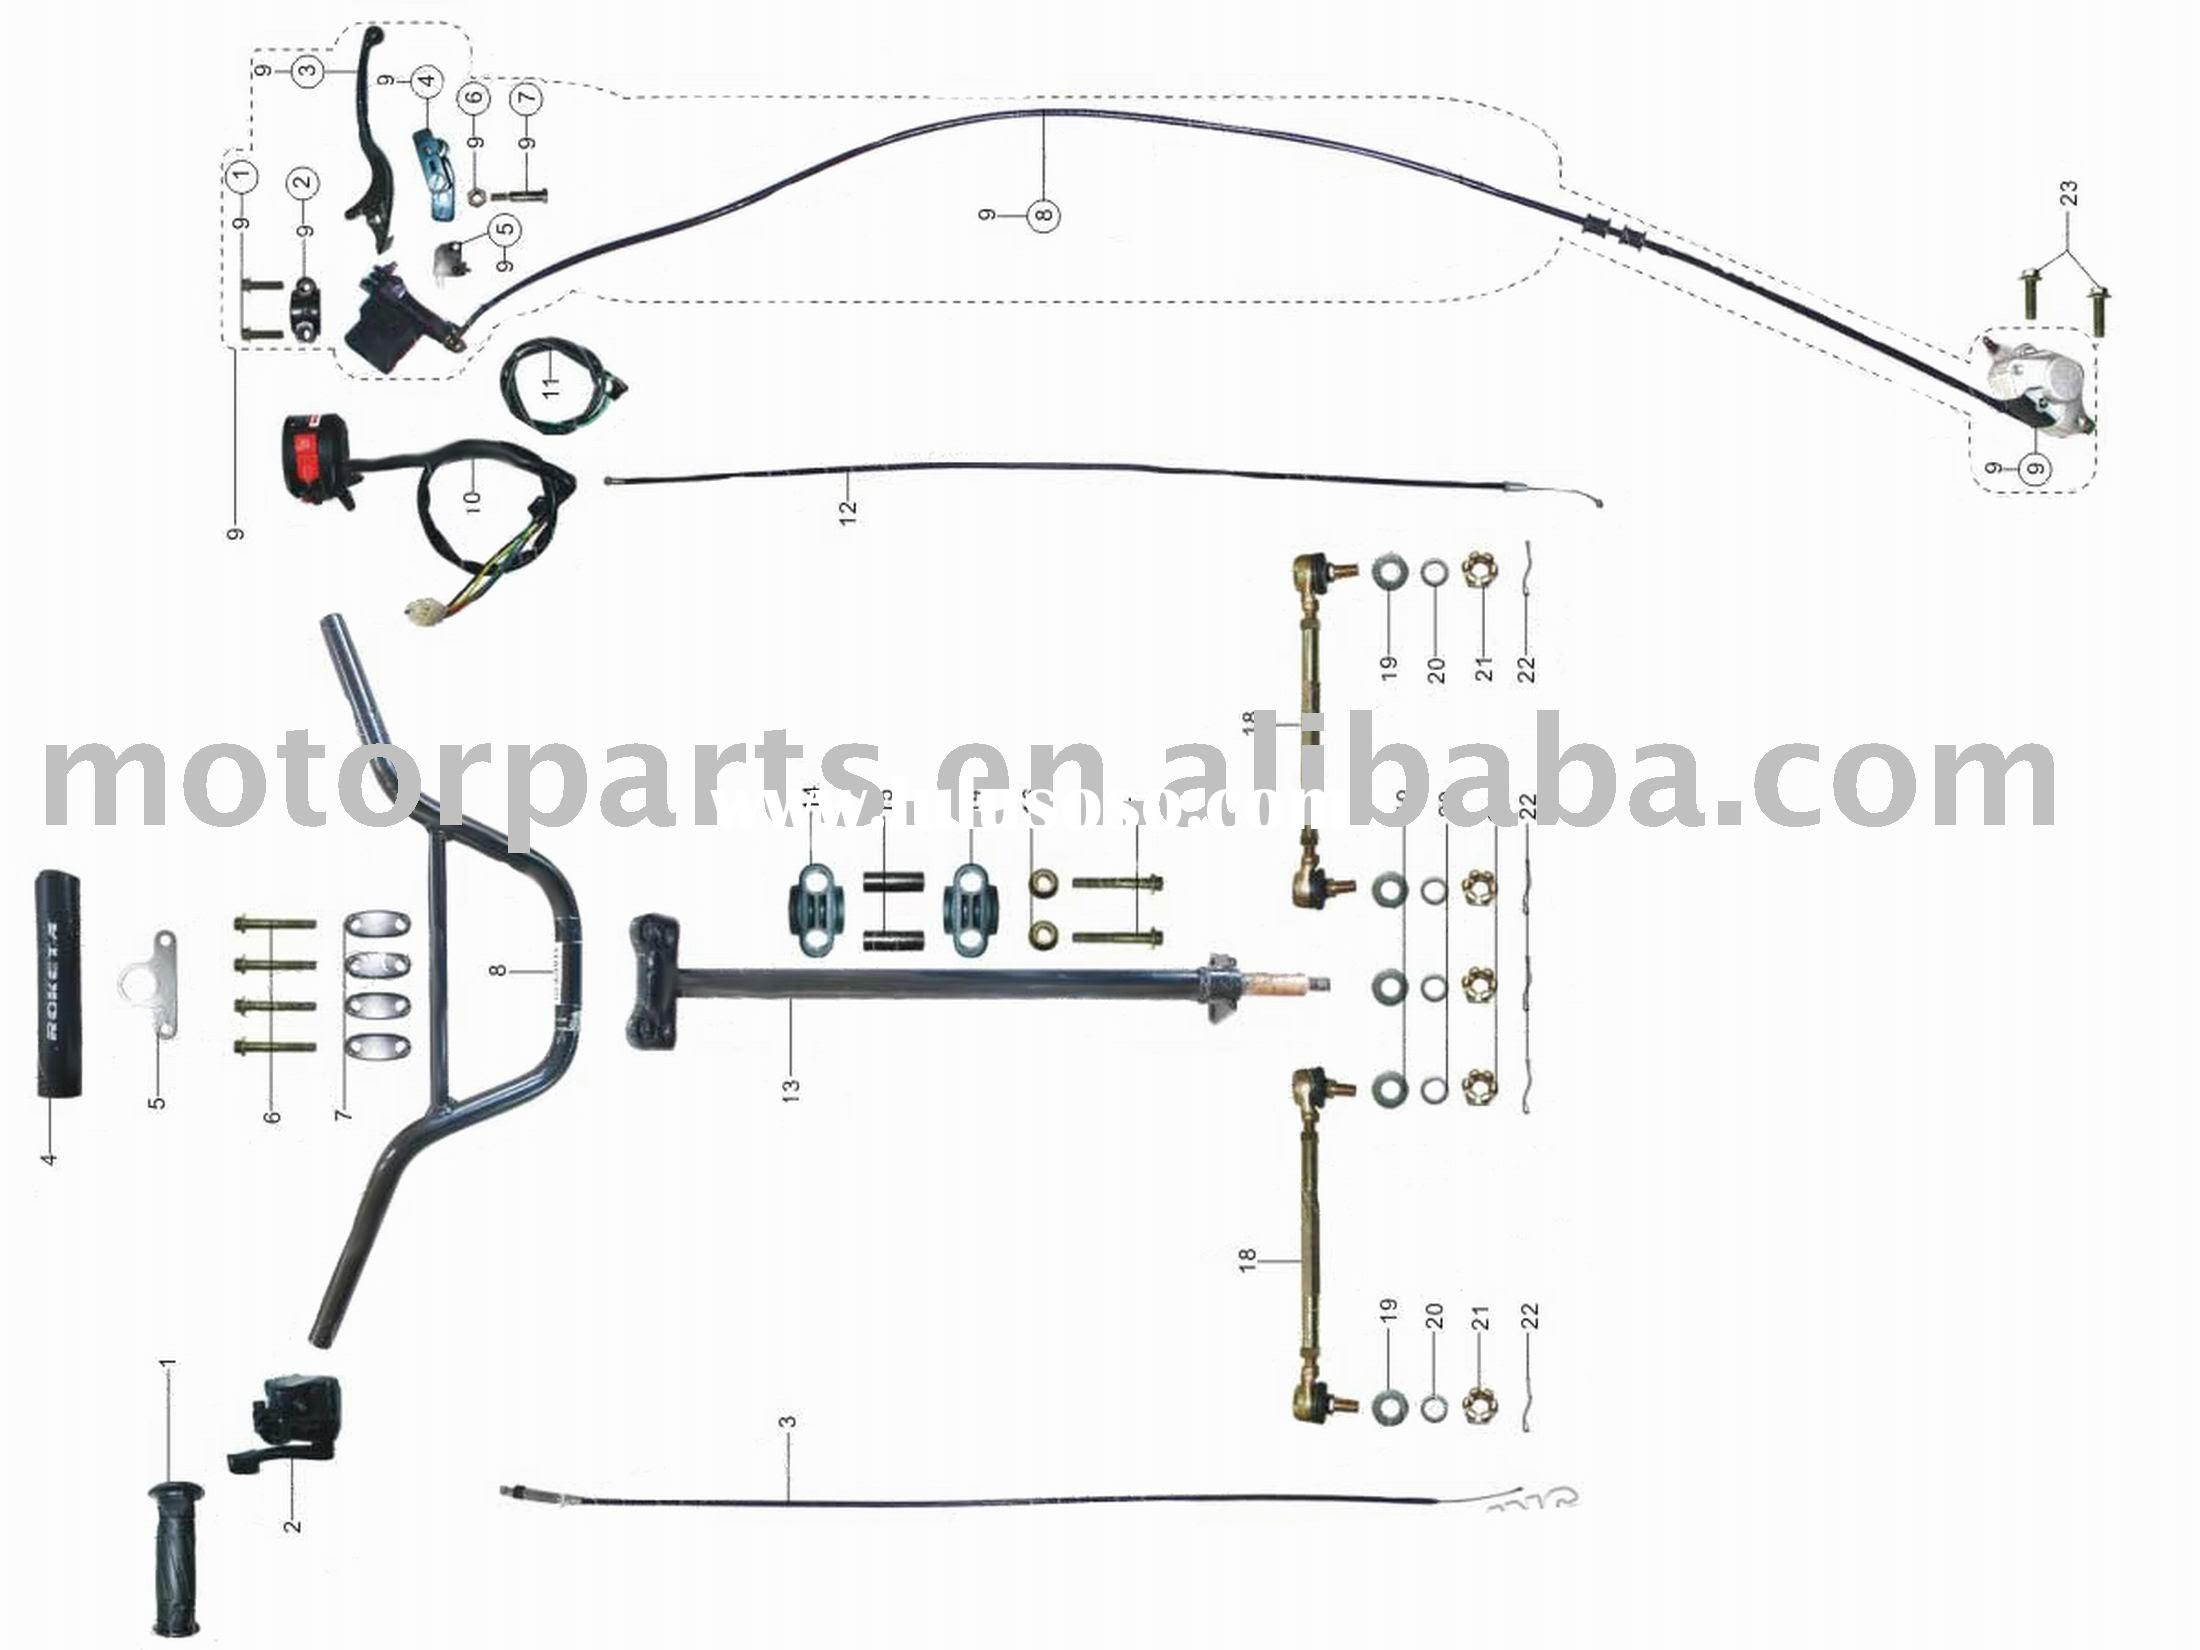 Wiring Manual PDF: 150cc Atv Wiring Diagram